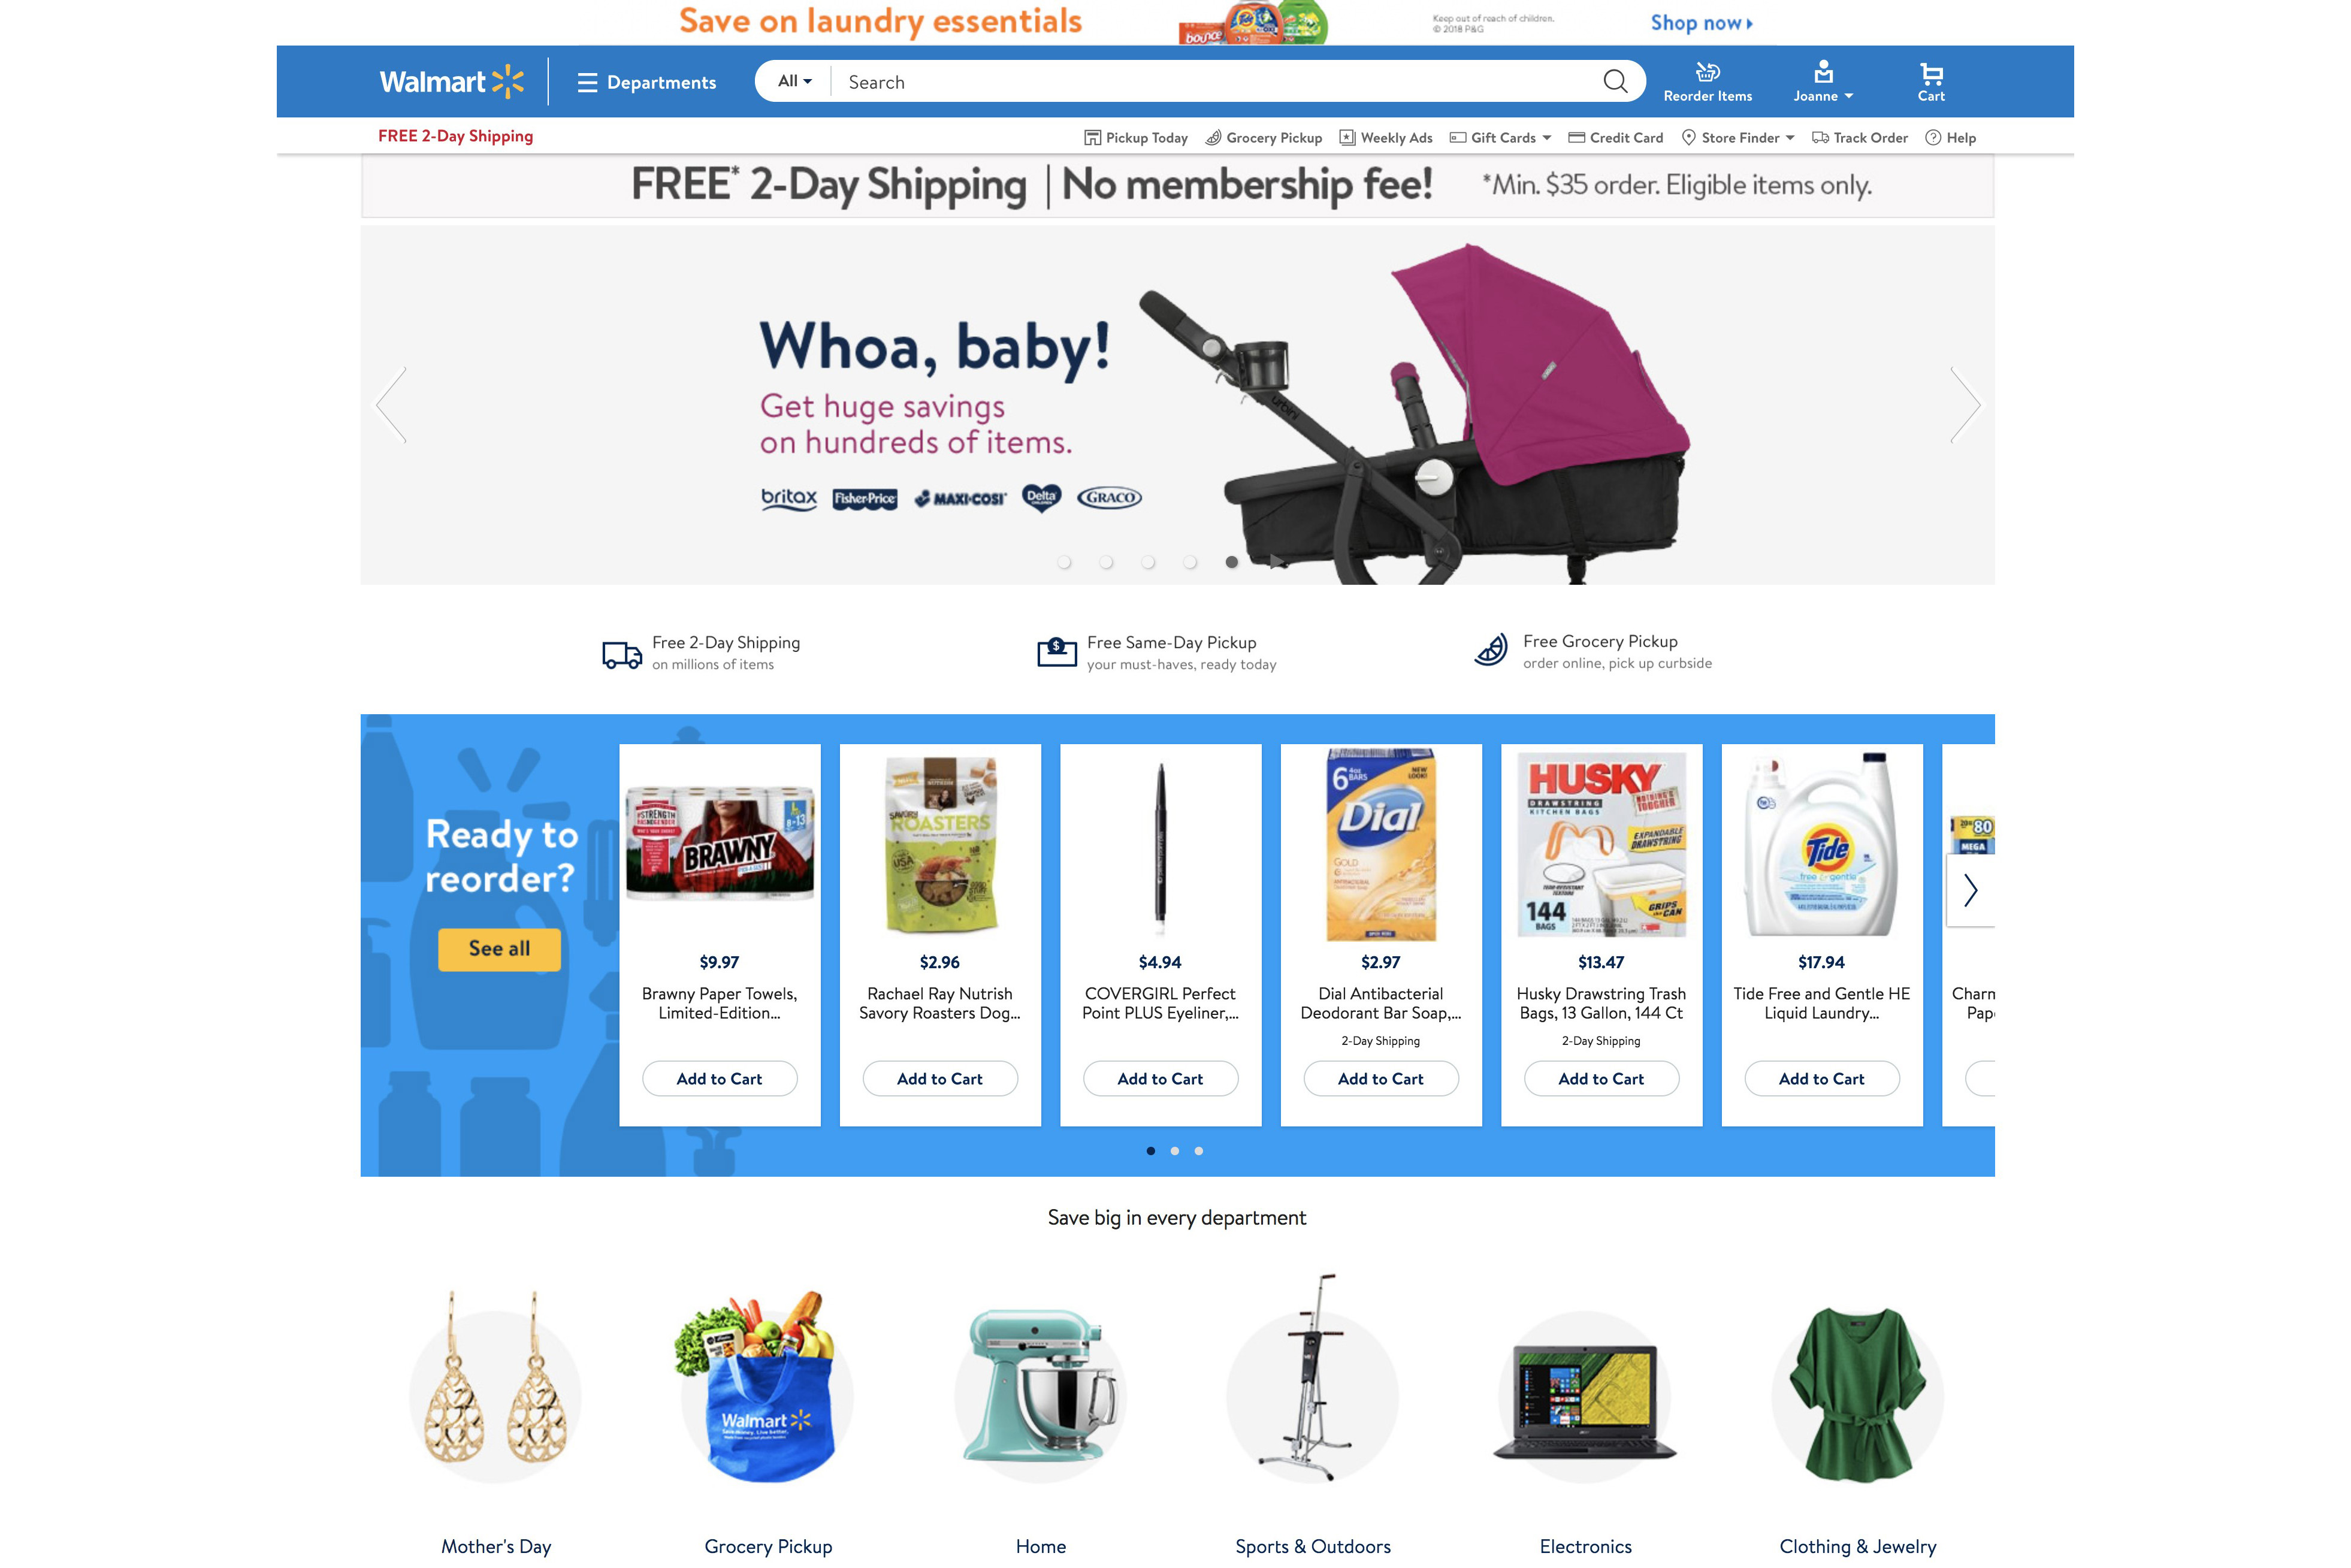 The Walmart website before the redesign.